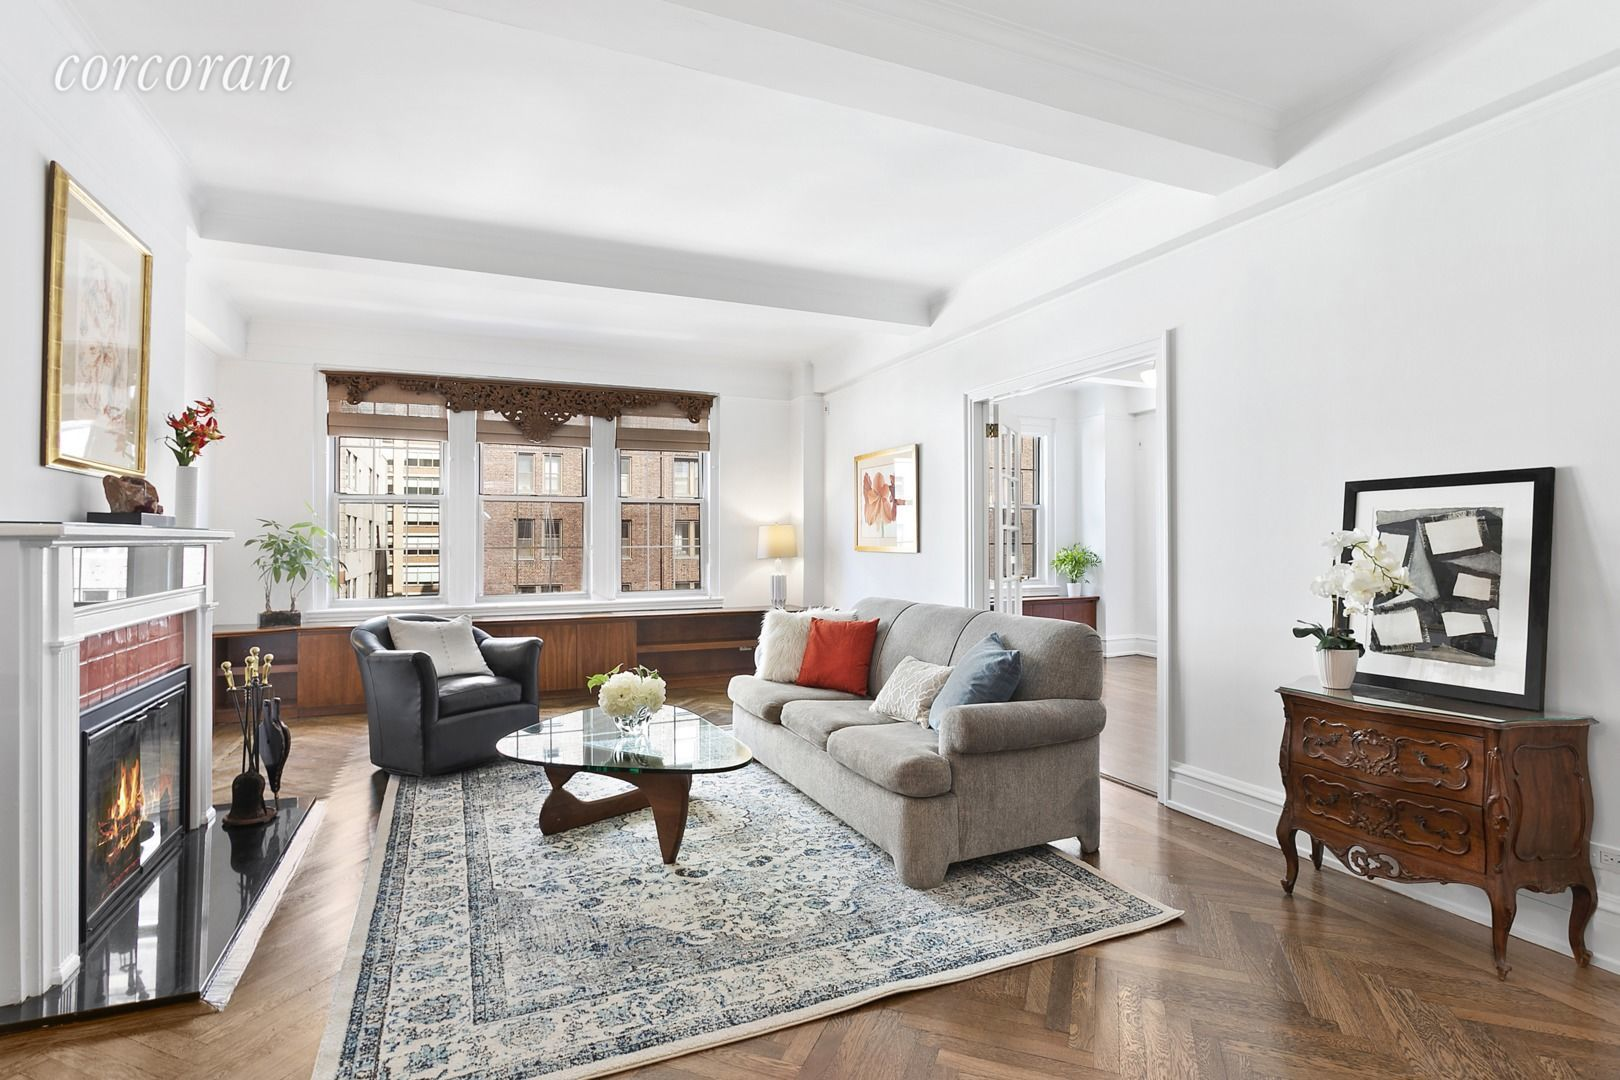 Apartment for sale at 410 East 57th Street, Apt 11A